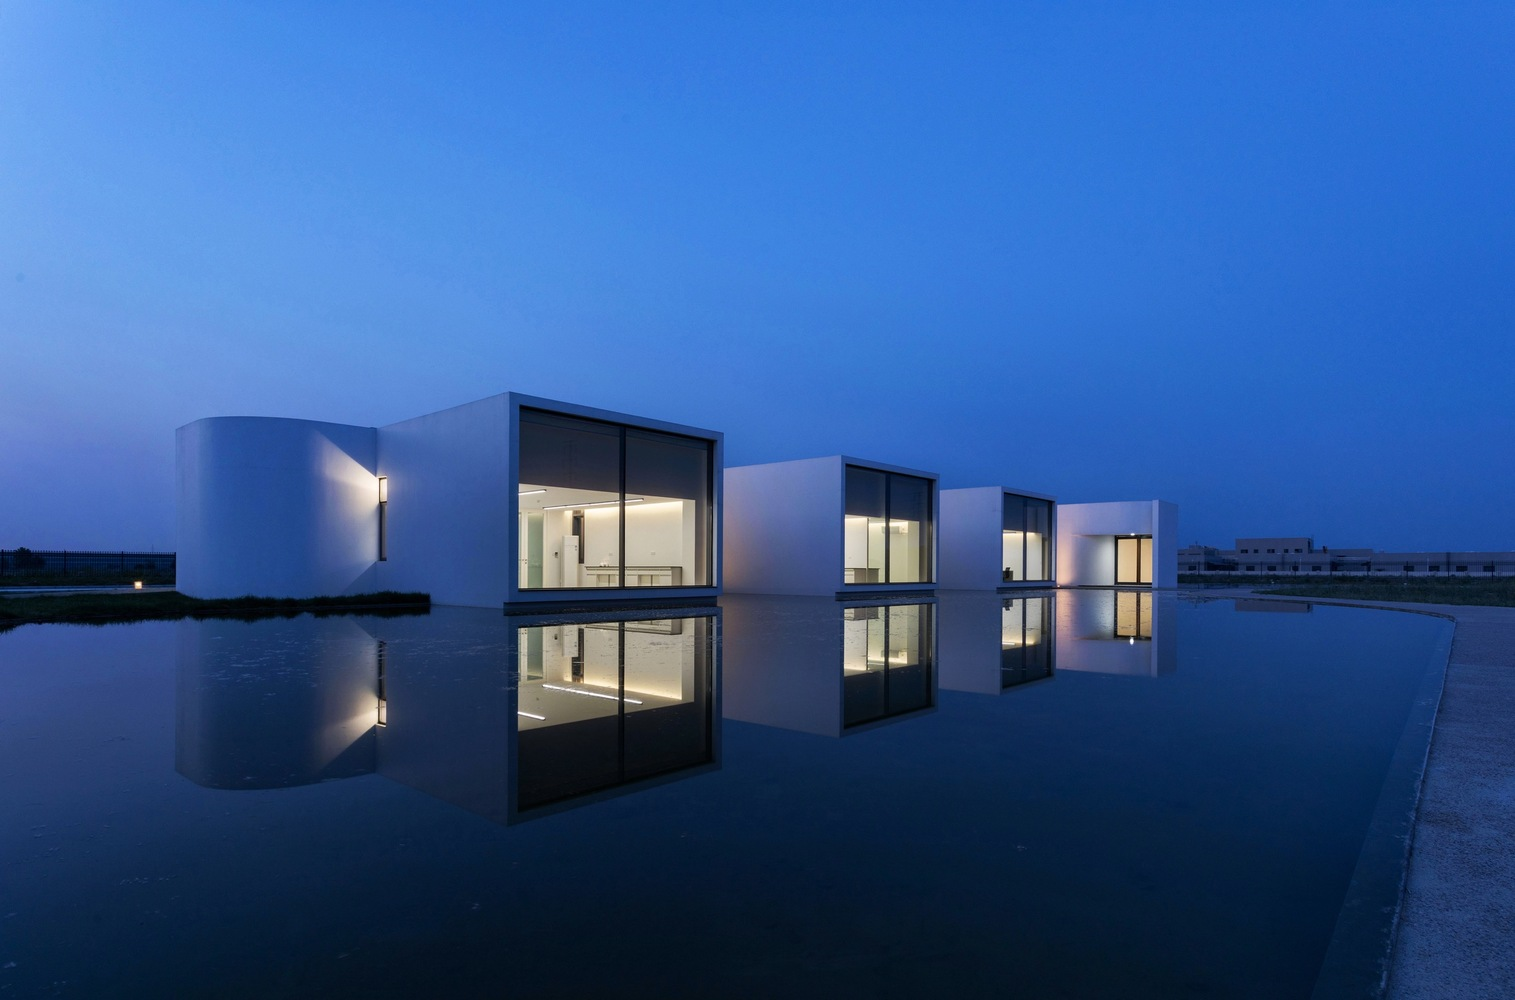 11_Laboratory for Shihlien Biotech Salt Plant_WZWX Architecture Group_Inspirationist